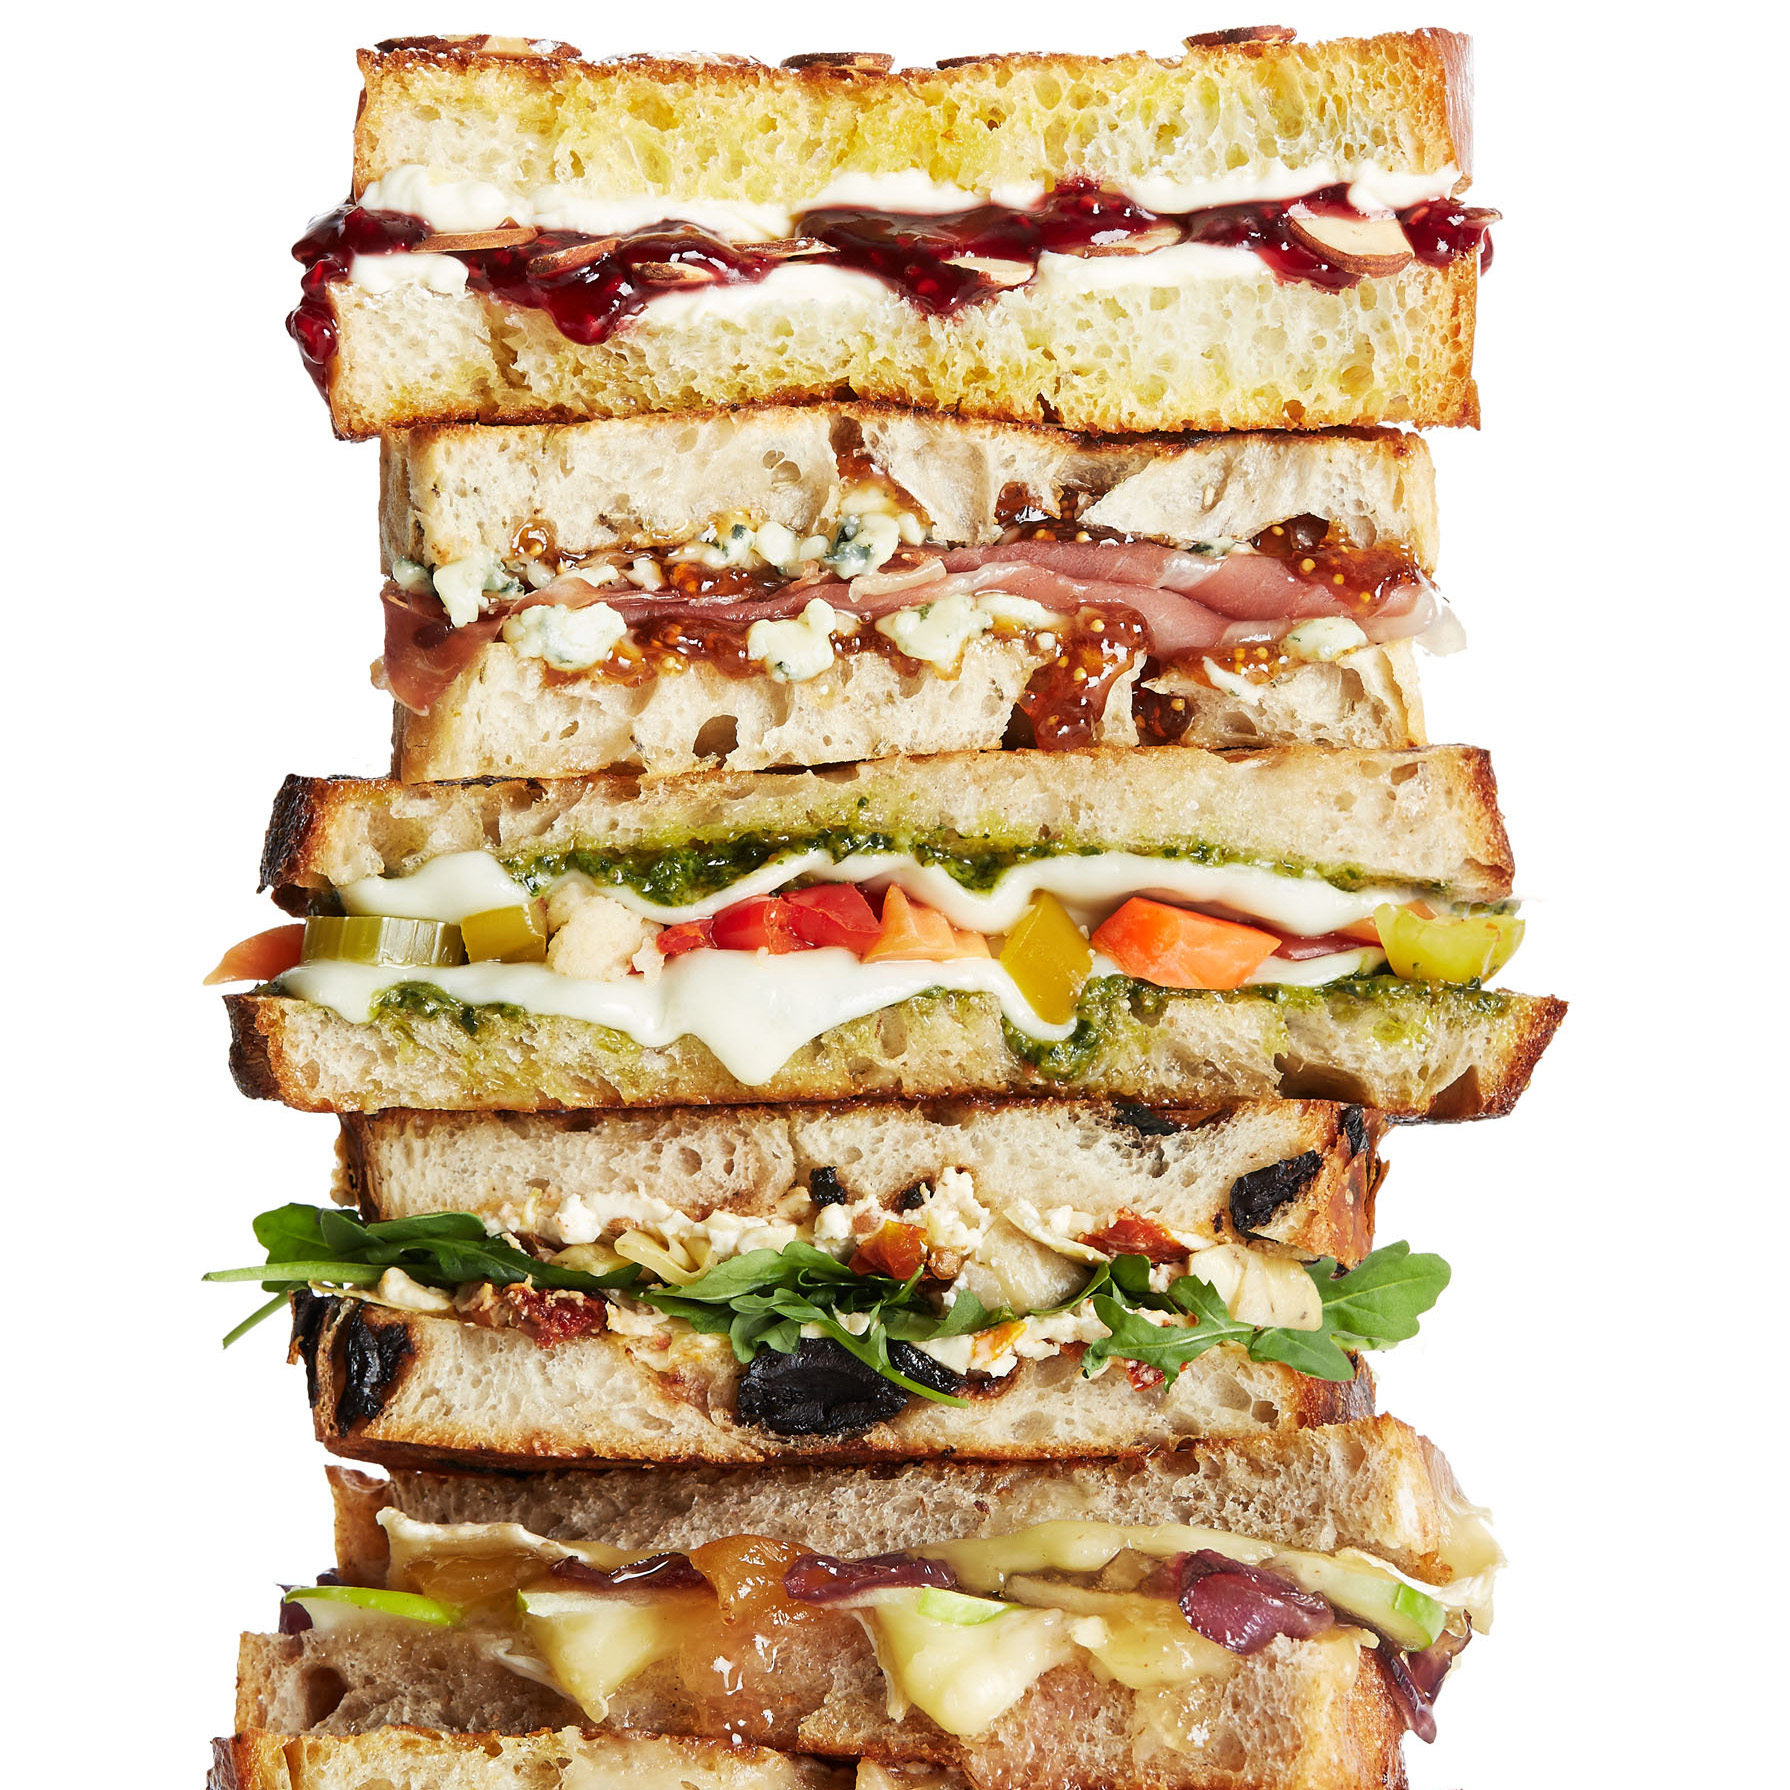 6 varieties of grilled cheese sandwiches